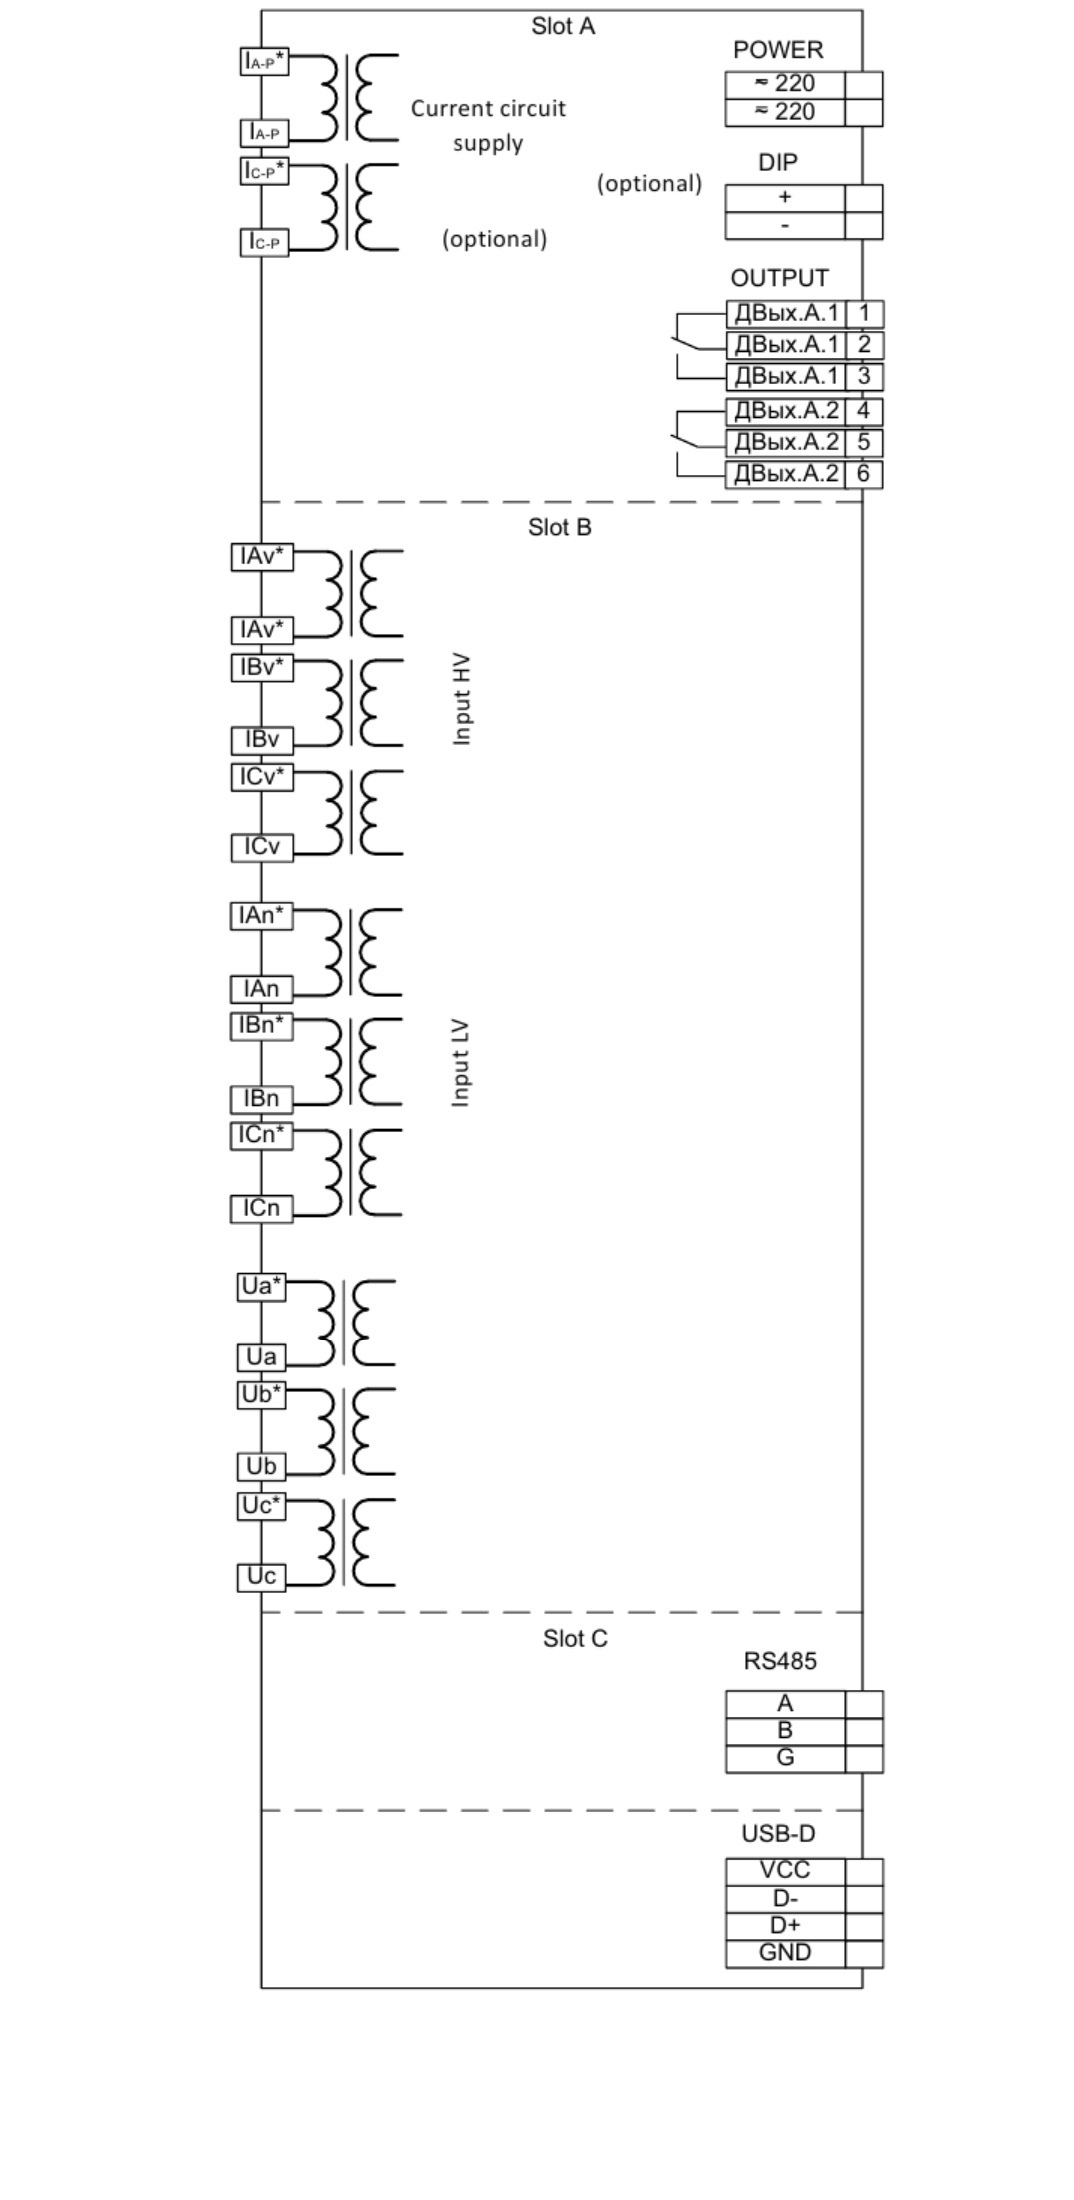 connection diagram MRZS-T str.1